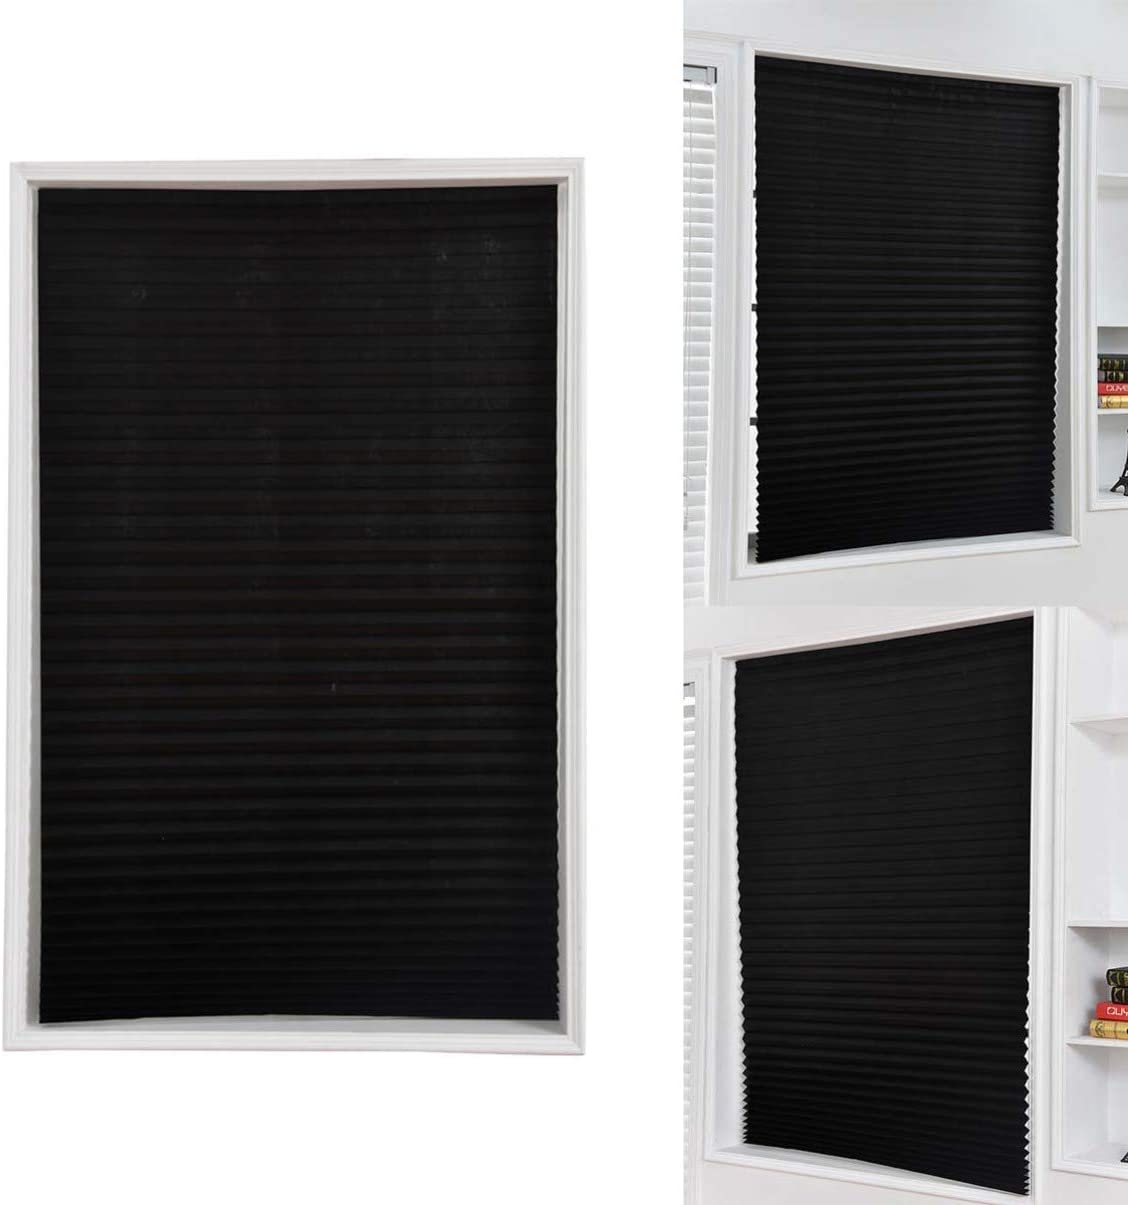 White LIOOBO Pleated Shade Curtain Non Woven Privacy Protecting Light Filtering Blind Pleated Fabric Shade for Balcony Bathroom Kitchen 60x150cm